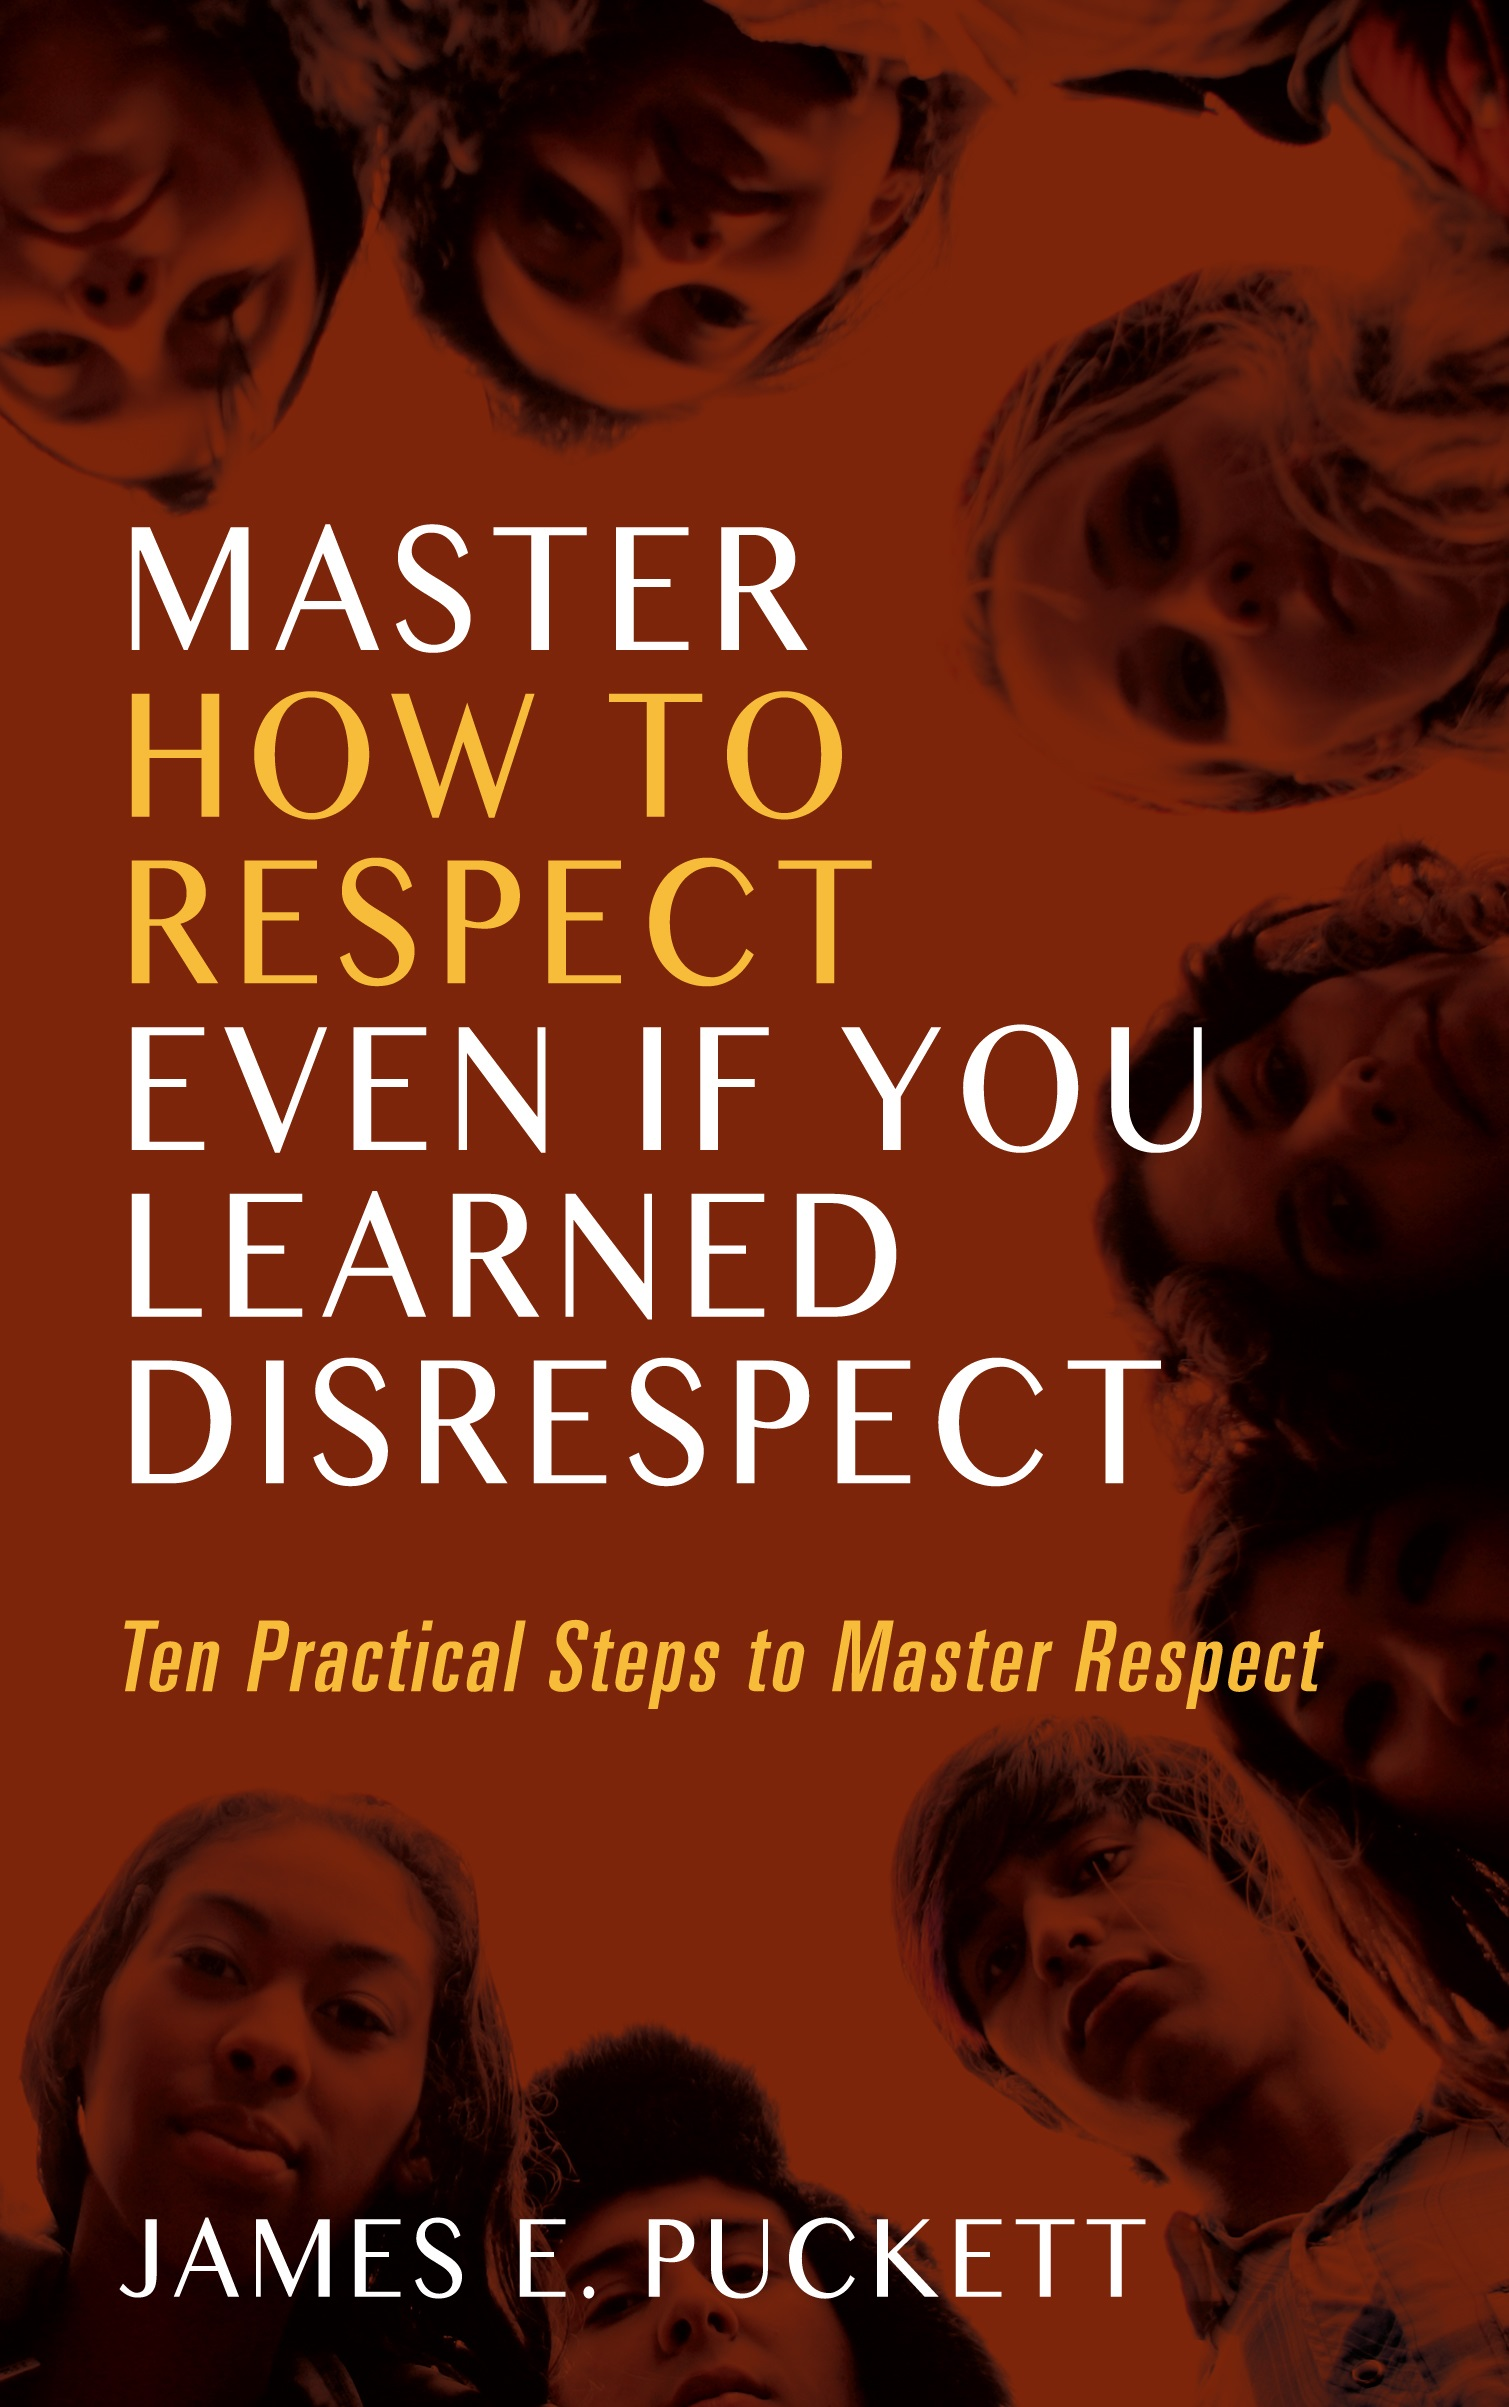 Master How To Respect Even If You Learned Disrespect